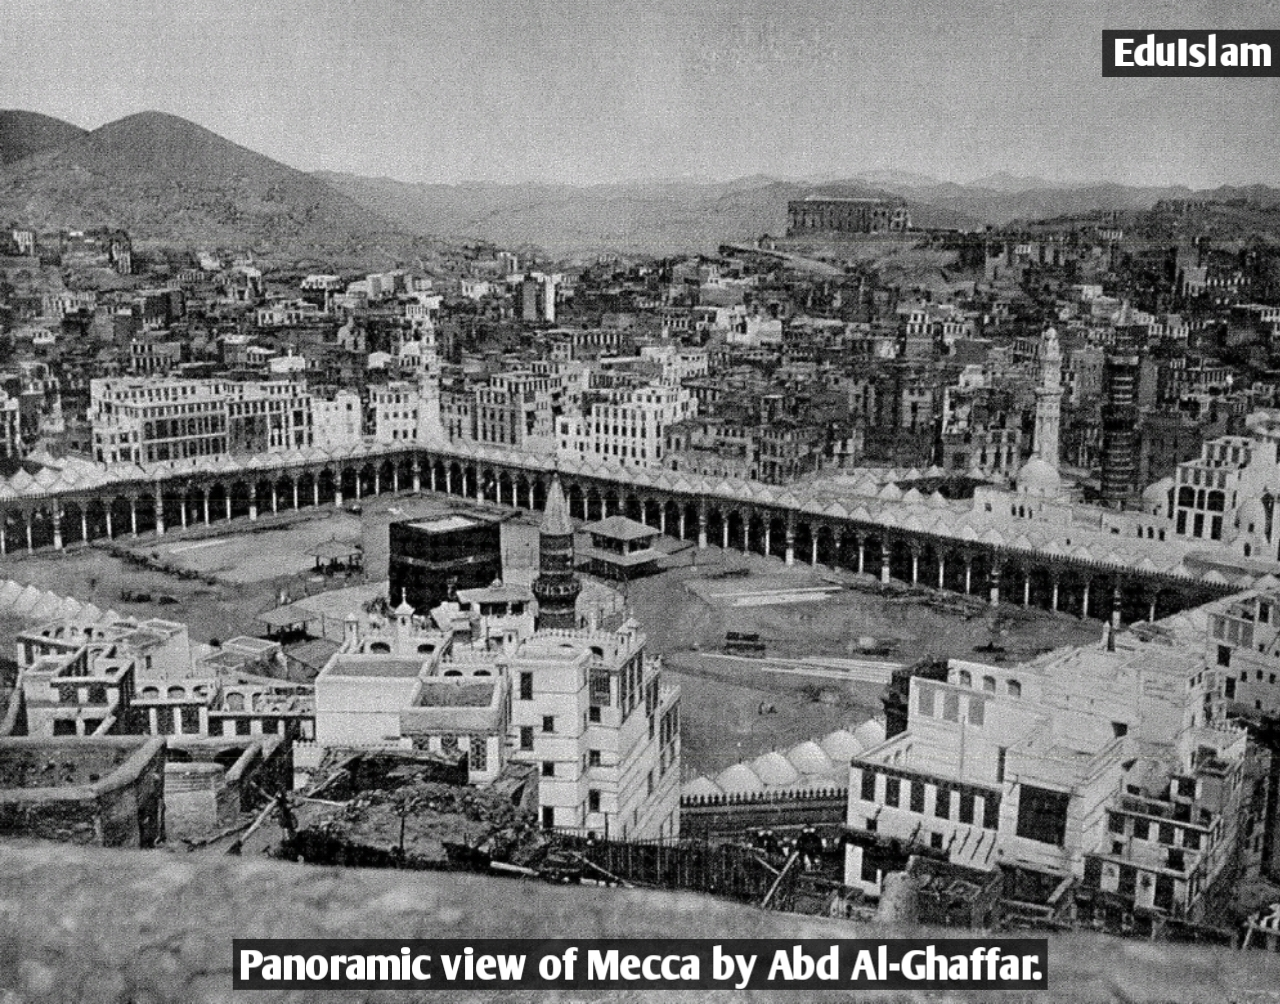 photos of Kaaba in Mecca, door of Kaaba photos, old photo of Kaaba Sharif, photo of Kaaba Sharif, photos of the Kaaba in mecca, amazing photos of Kaaba